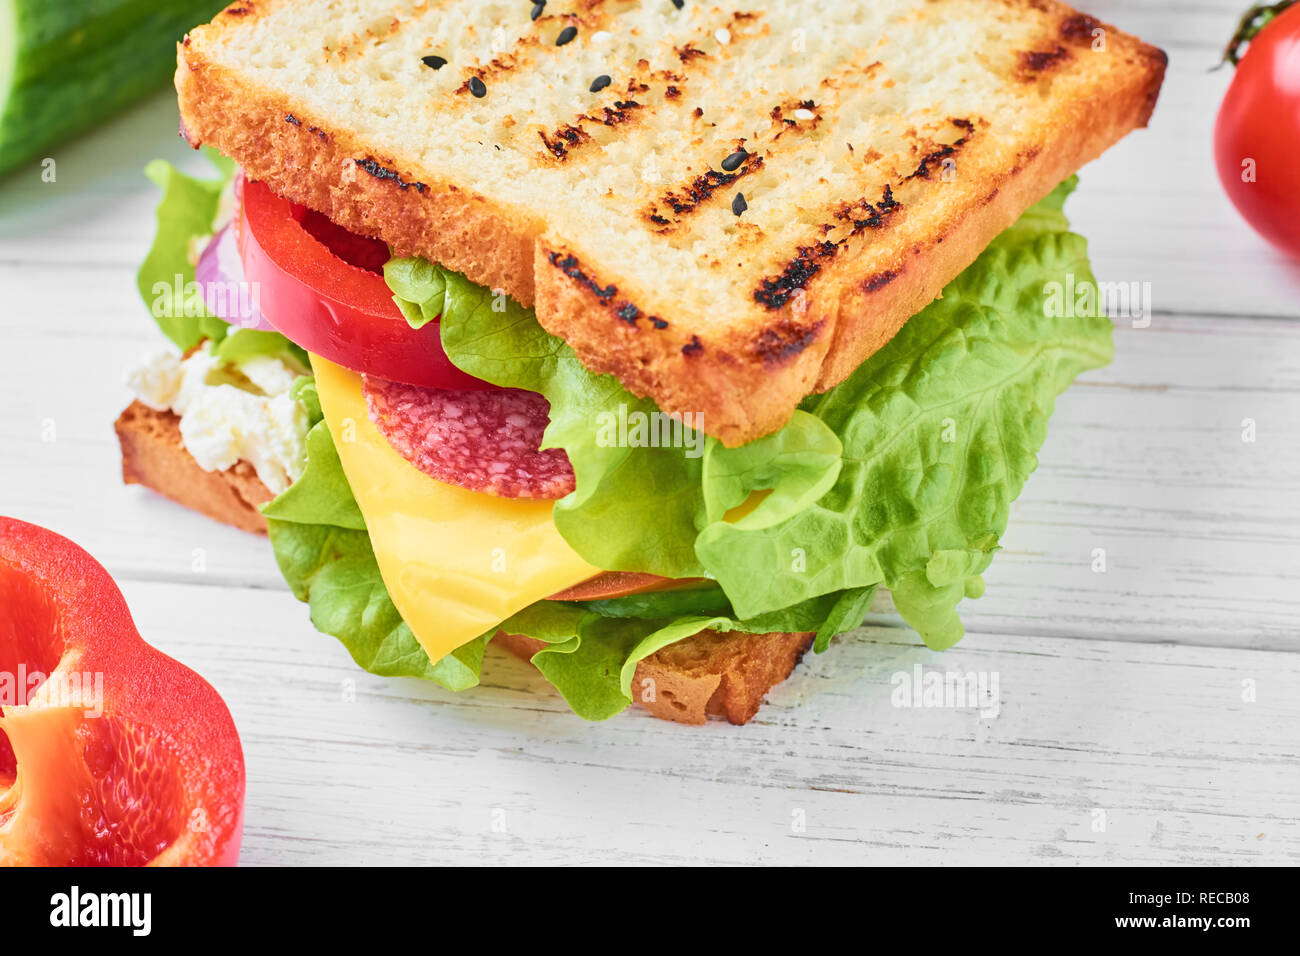 sandwiche with ham, lettuce and fresh vegetables on white background close up - Stock Image